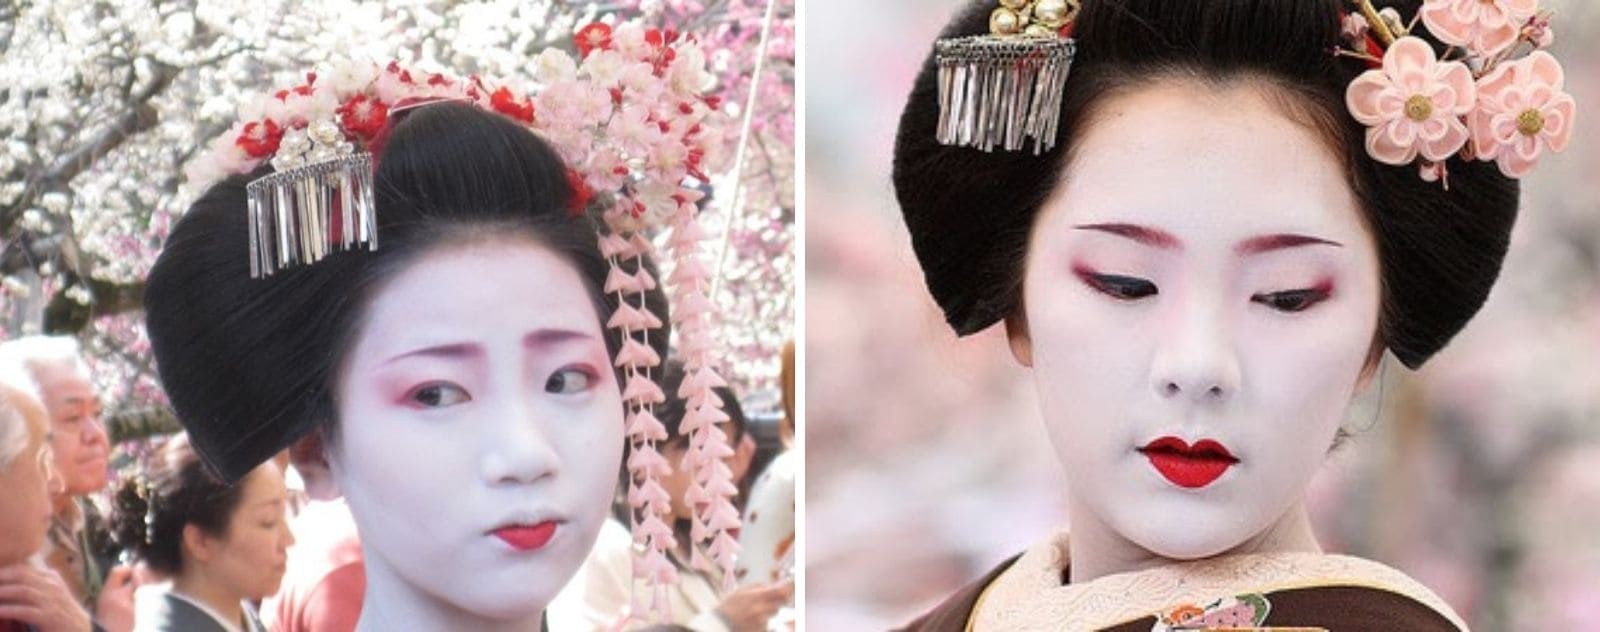 Maquillage Geisha